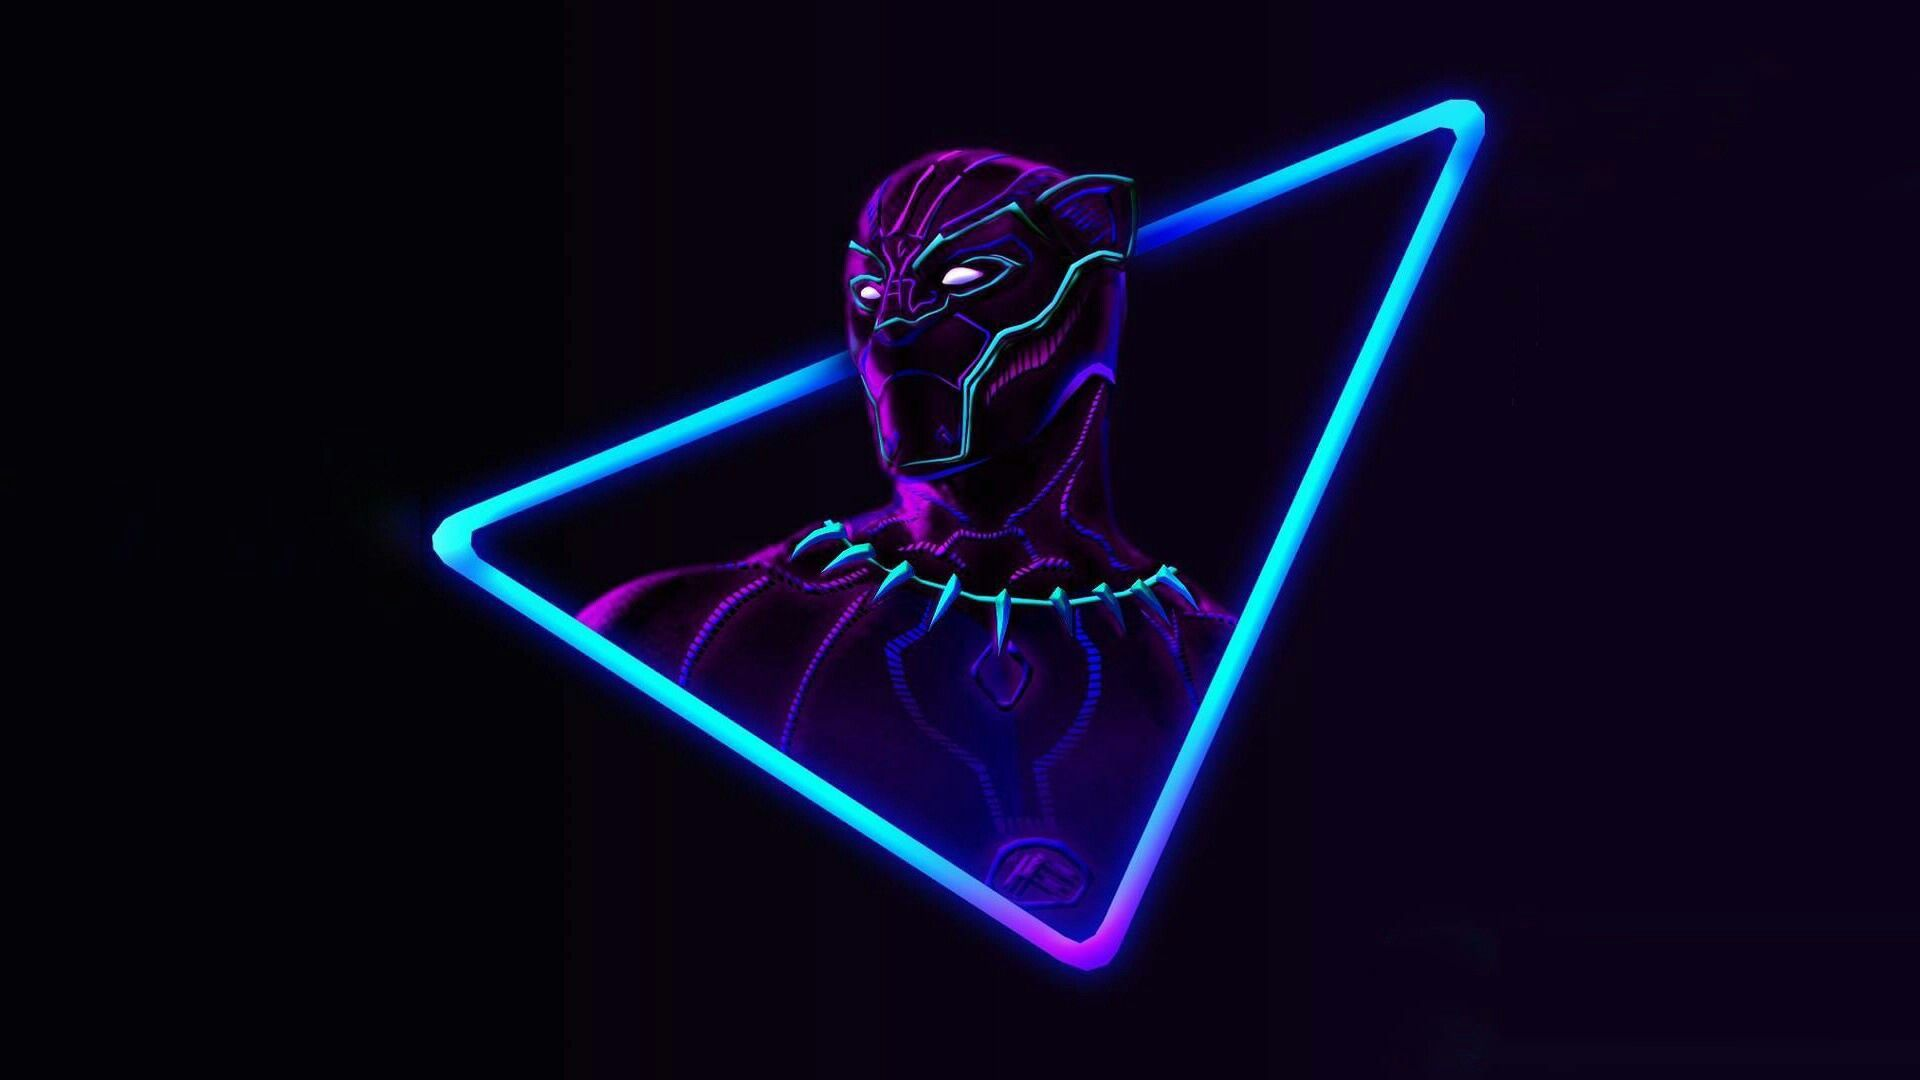 Black Panther Neon Marvel Wallpaper Hd Avengers Wallpaper Cool Desktop Wallpapers